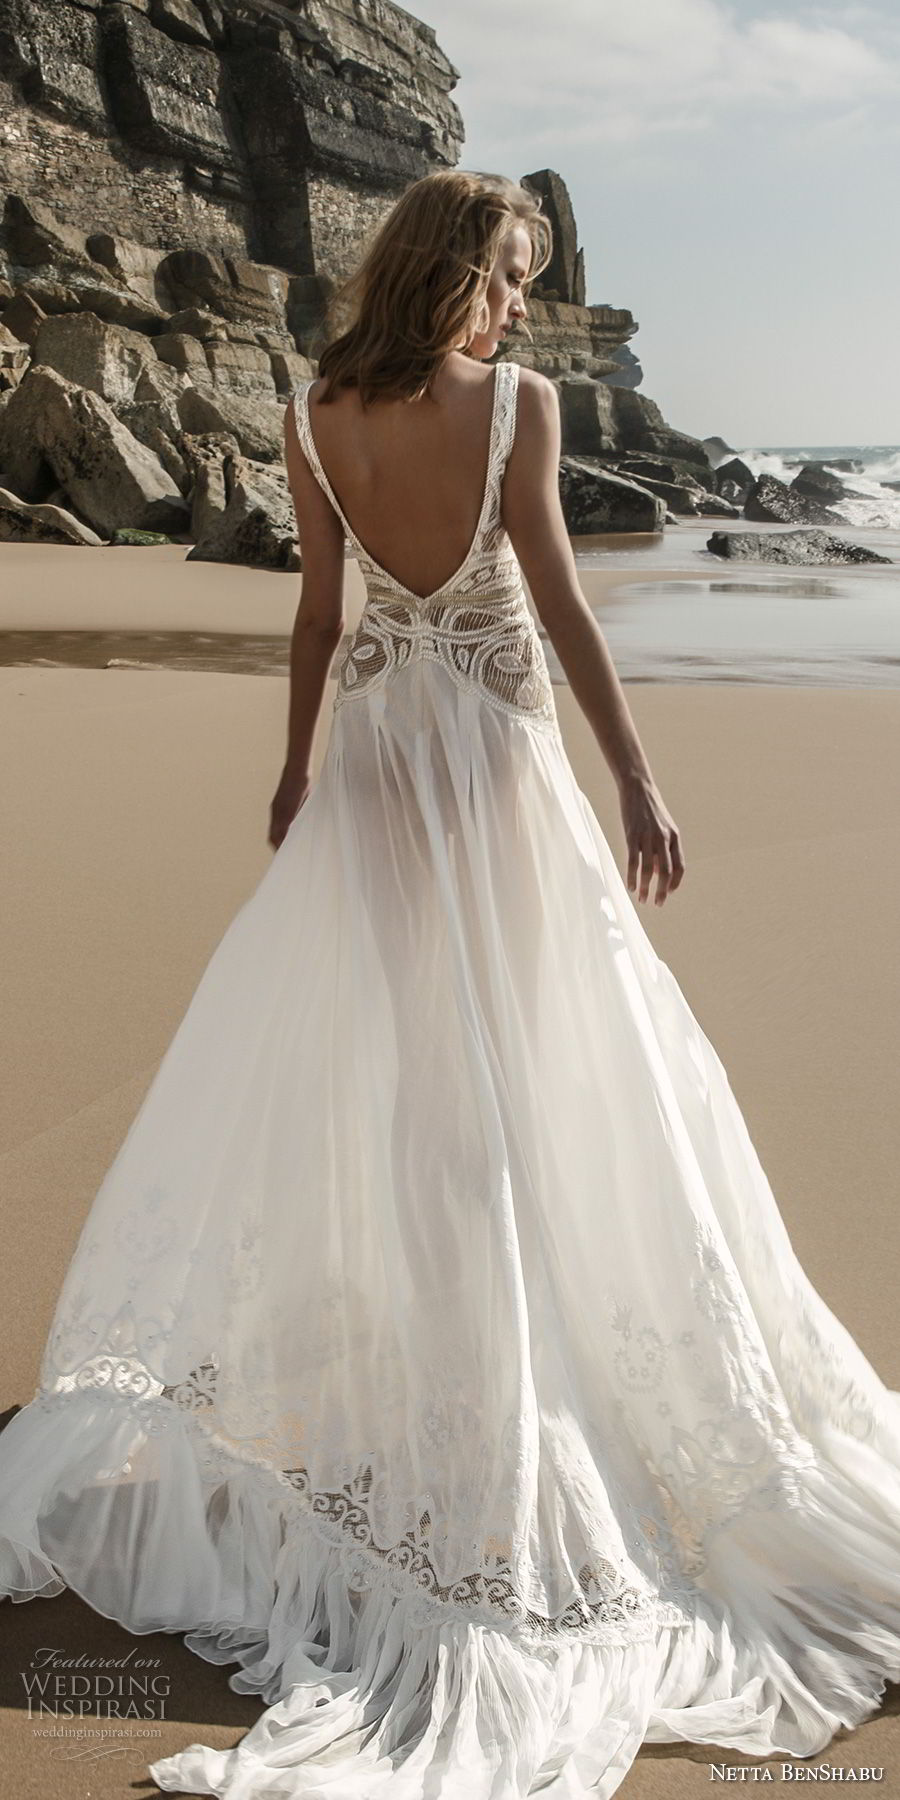 netta benshabu 2017 bridal sleeveless deep v neck heavily embellished bodice high slit skirt sexy romantic soft a line wedding dress open scoop back chapel train (6) bv